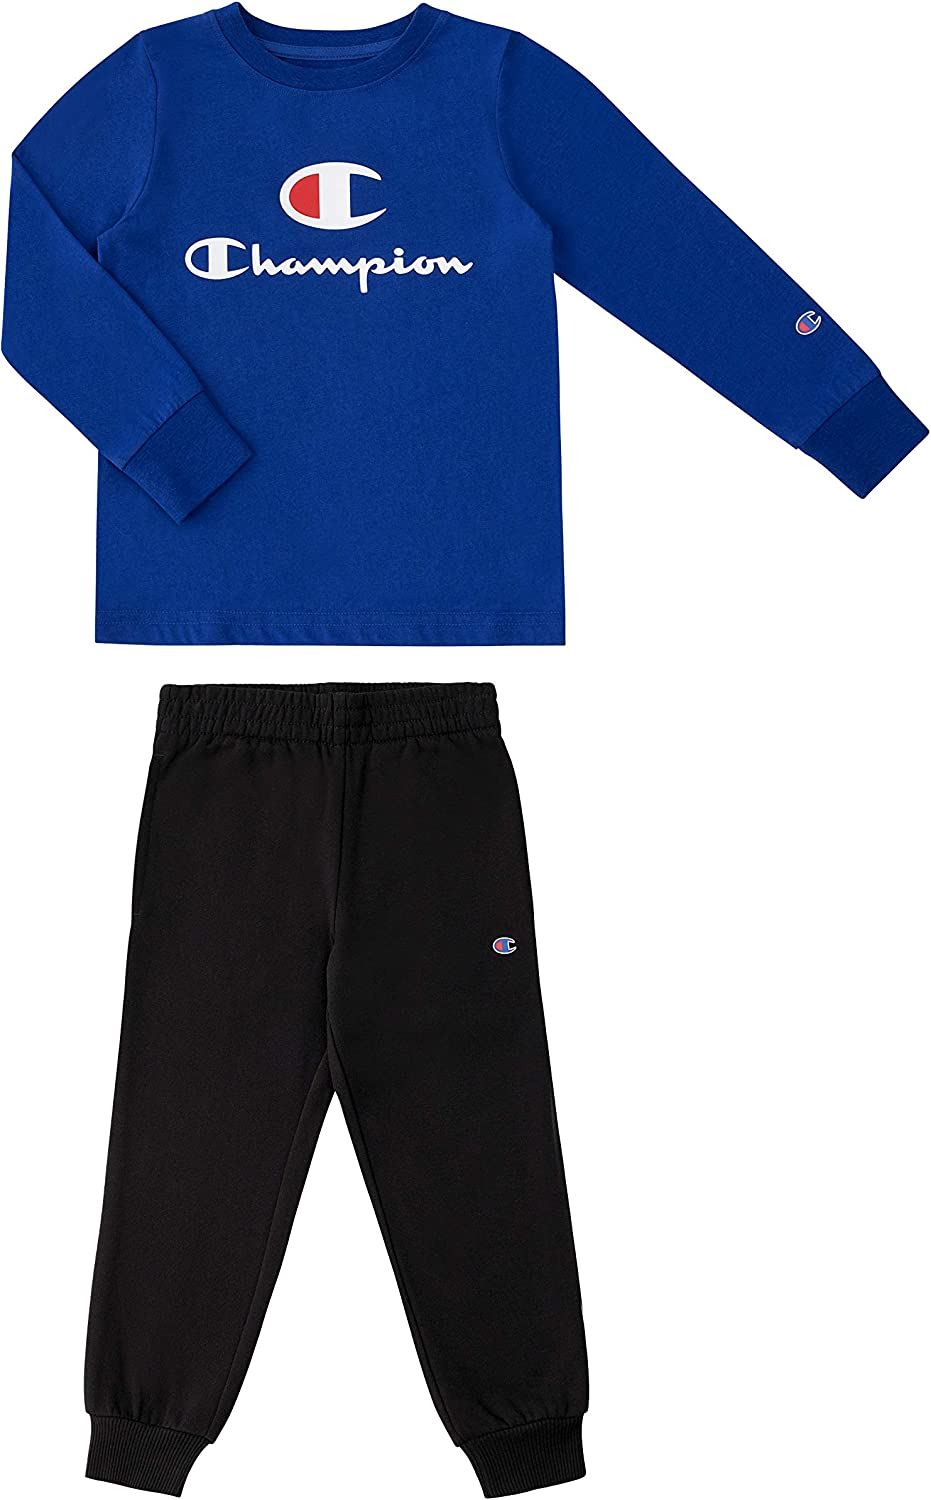 Champion Kids Boys Long Sleeve Hooded and Crew Neck Tee...